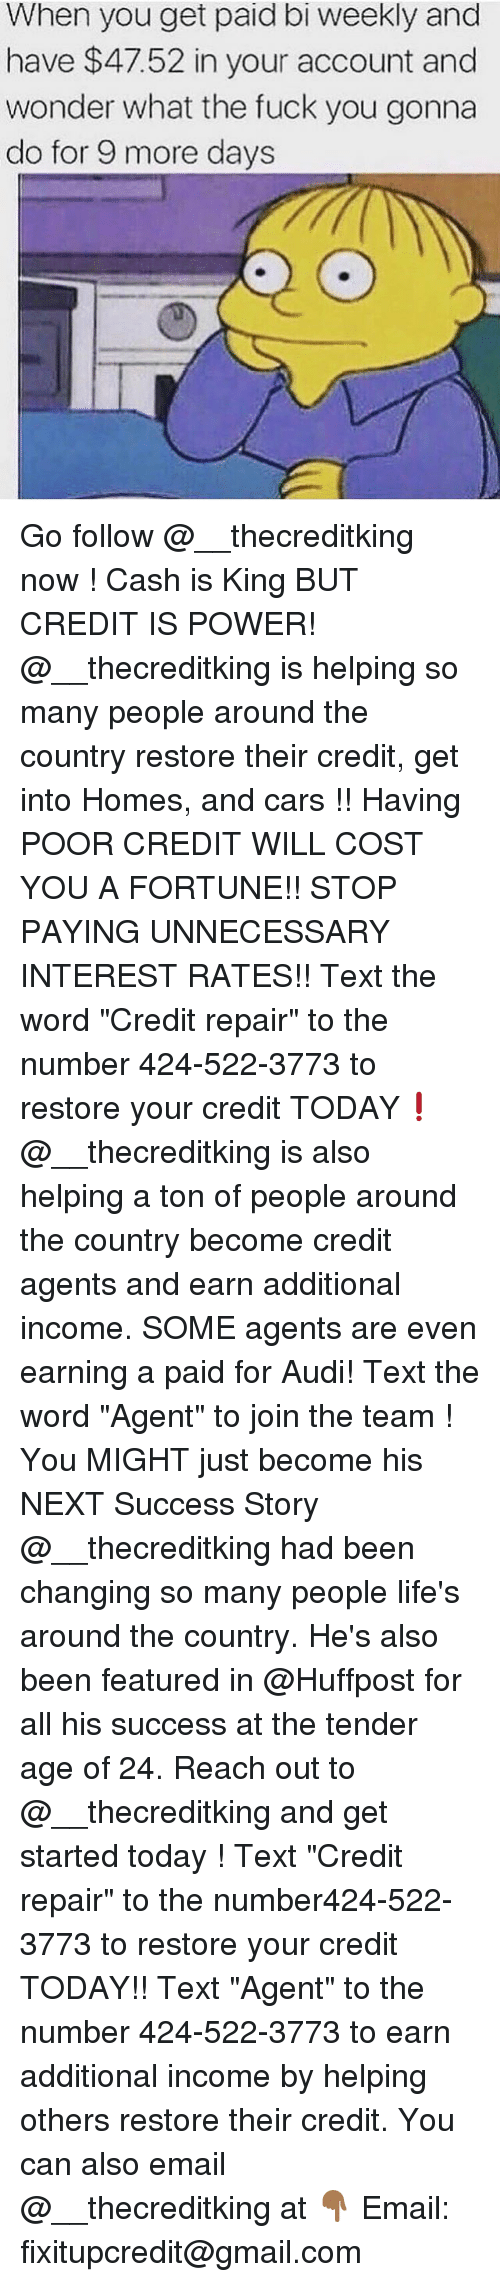 "Cars, Fuck You, and Memes: When you get paid bi weekly and  have $47.52 in your account and  wonder what the fuck you gonna  do for 9 more days Go follow @__thecreditking now ! Cash is King BUT CREDIT IS POWER! @__thecreditking is helping so many people around the country restore their credit, get into Homes, and cars !! Having POOR CREDIT WILL COST YOU A FORTUNE!! STOP PAYING UNNECESSARY INTEREST RATES!! Text the word ""Credit repair"" to the number 424-522-3773 to restore your credit TODAY❗️ @__thecreditking is also helping a ton of people around the country become credit agents and earn additional income. SOME agents are even earning a paid for Audi! Text the word ""Agent"" to join the team ! You MIGHT just become his NEXT Success Story @__thecreditking had been changing so many people life's around the country. He's also been featured in @Huffpost for all his success at the tender age of 24. Reach out to @__thecreditking and get started today ! Text ""Credit repair"" to the number424-522-3773 to restore your credit TODAY!! Text ""Agent"" to the number 424-522-3773 to earn additional income by helping others restore their credit. You can also email @__thecreditking at 👇🏾 Email: fixitupcredit@gmail.com"